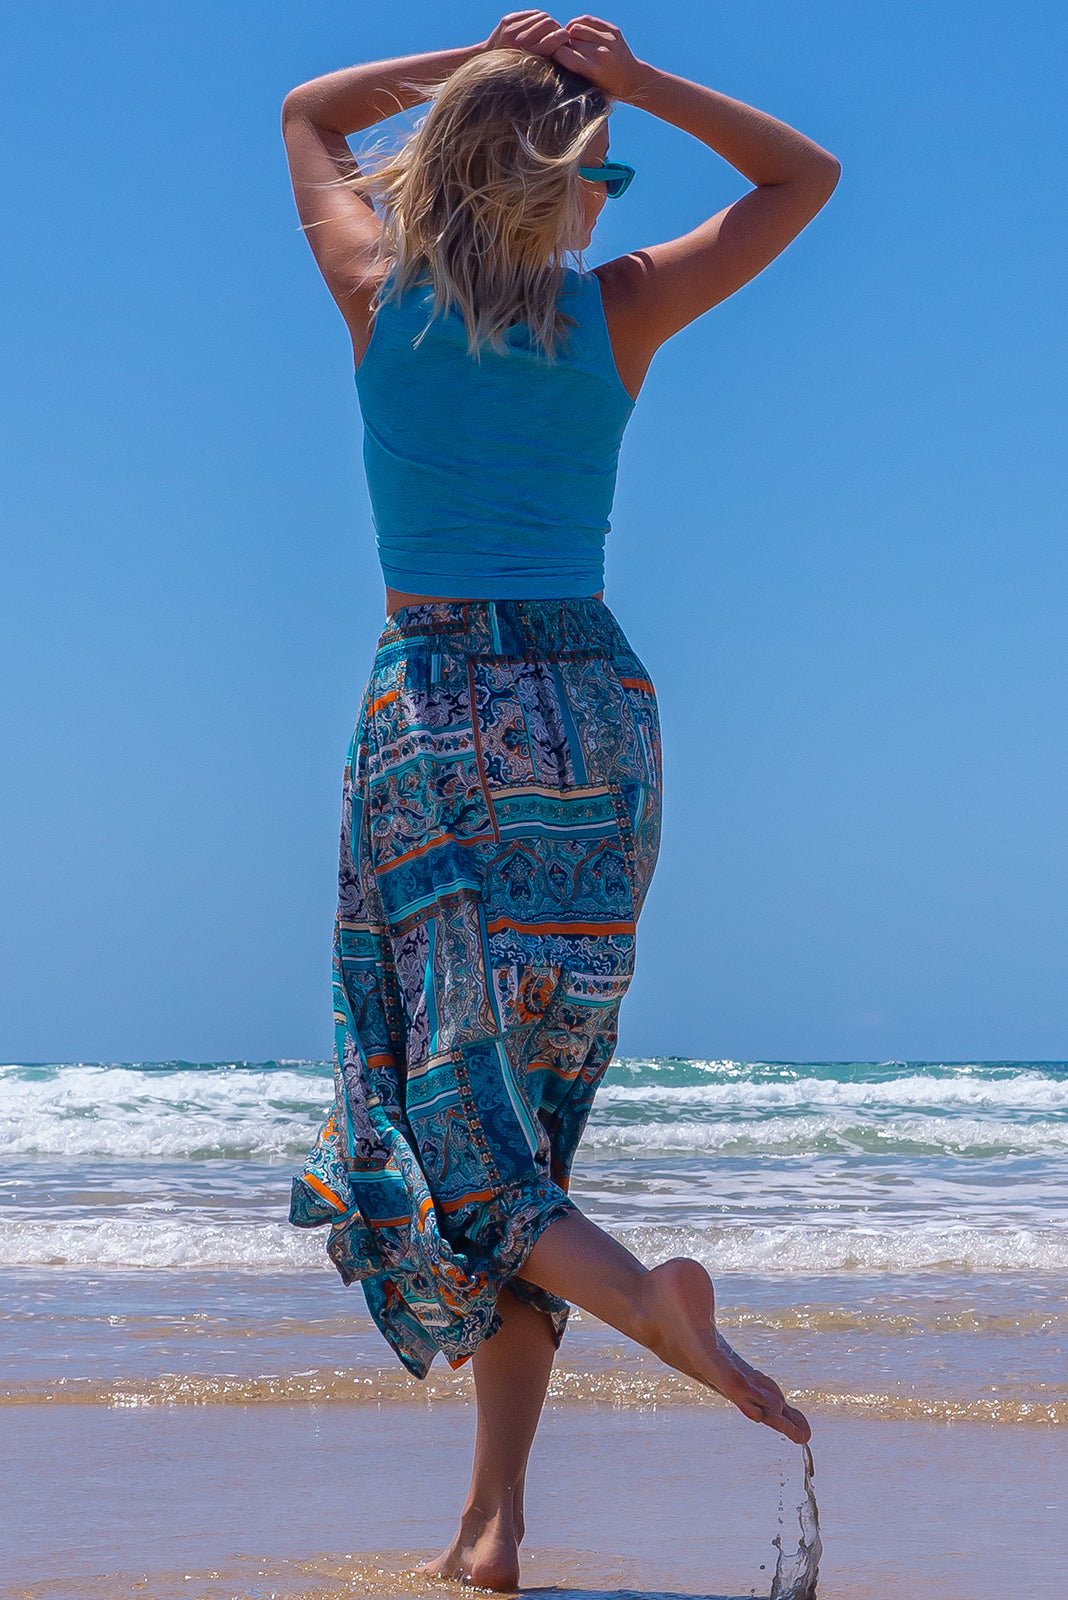 The Atlantis Tetouan Teal Maxi Skirt features double V-shaped waist, elasticated & ruched back of waist, side pockets, shapely hemline and 100% viscose in turquoise, white, beige and orange paisley print.